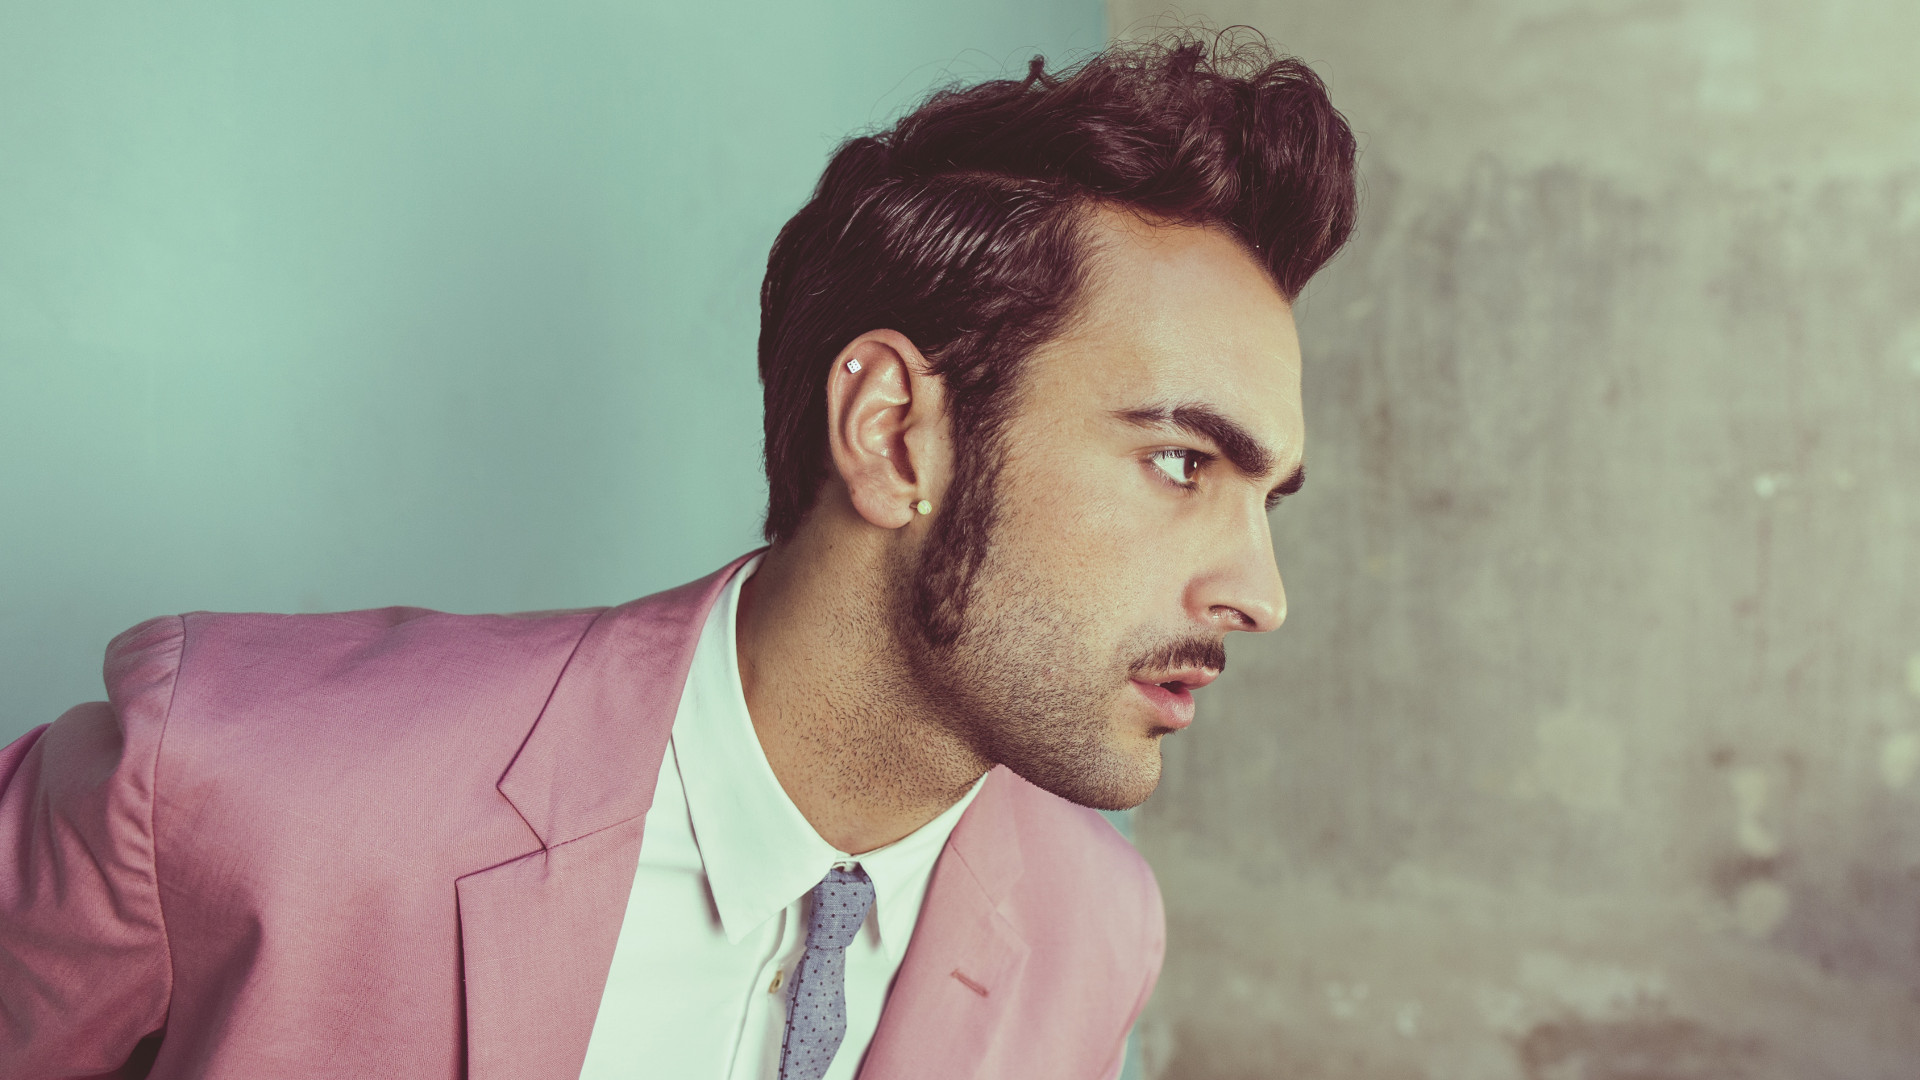 marco mengoni sexy